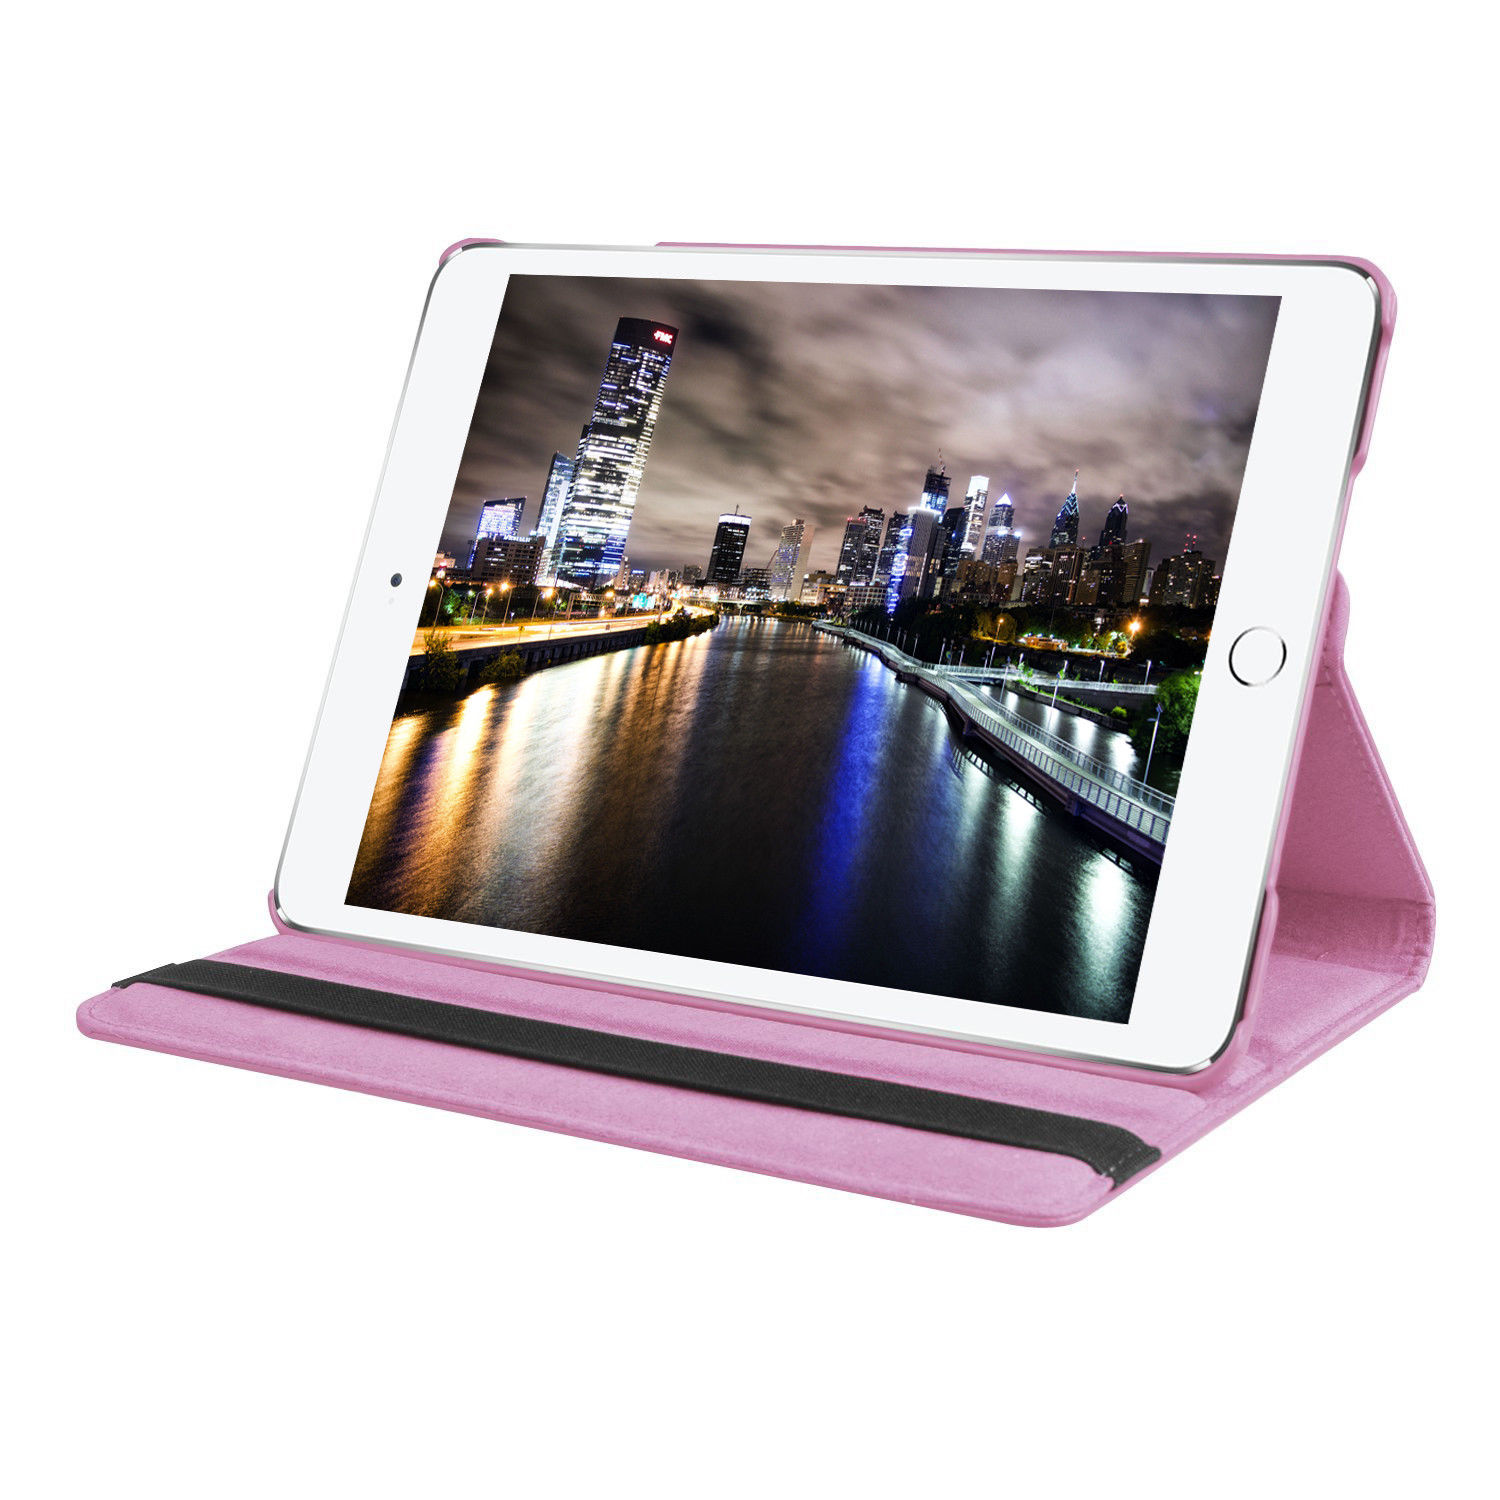 Custodia-per-Apple-iPad-Pro-2017-iPad-Air-3-10-5-Smart-Cover-Case-Custodia-Protettiva miniatura 71